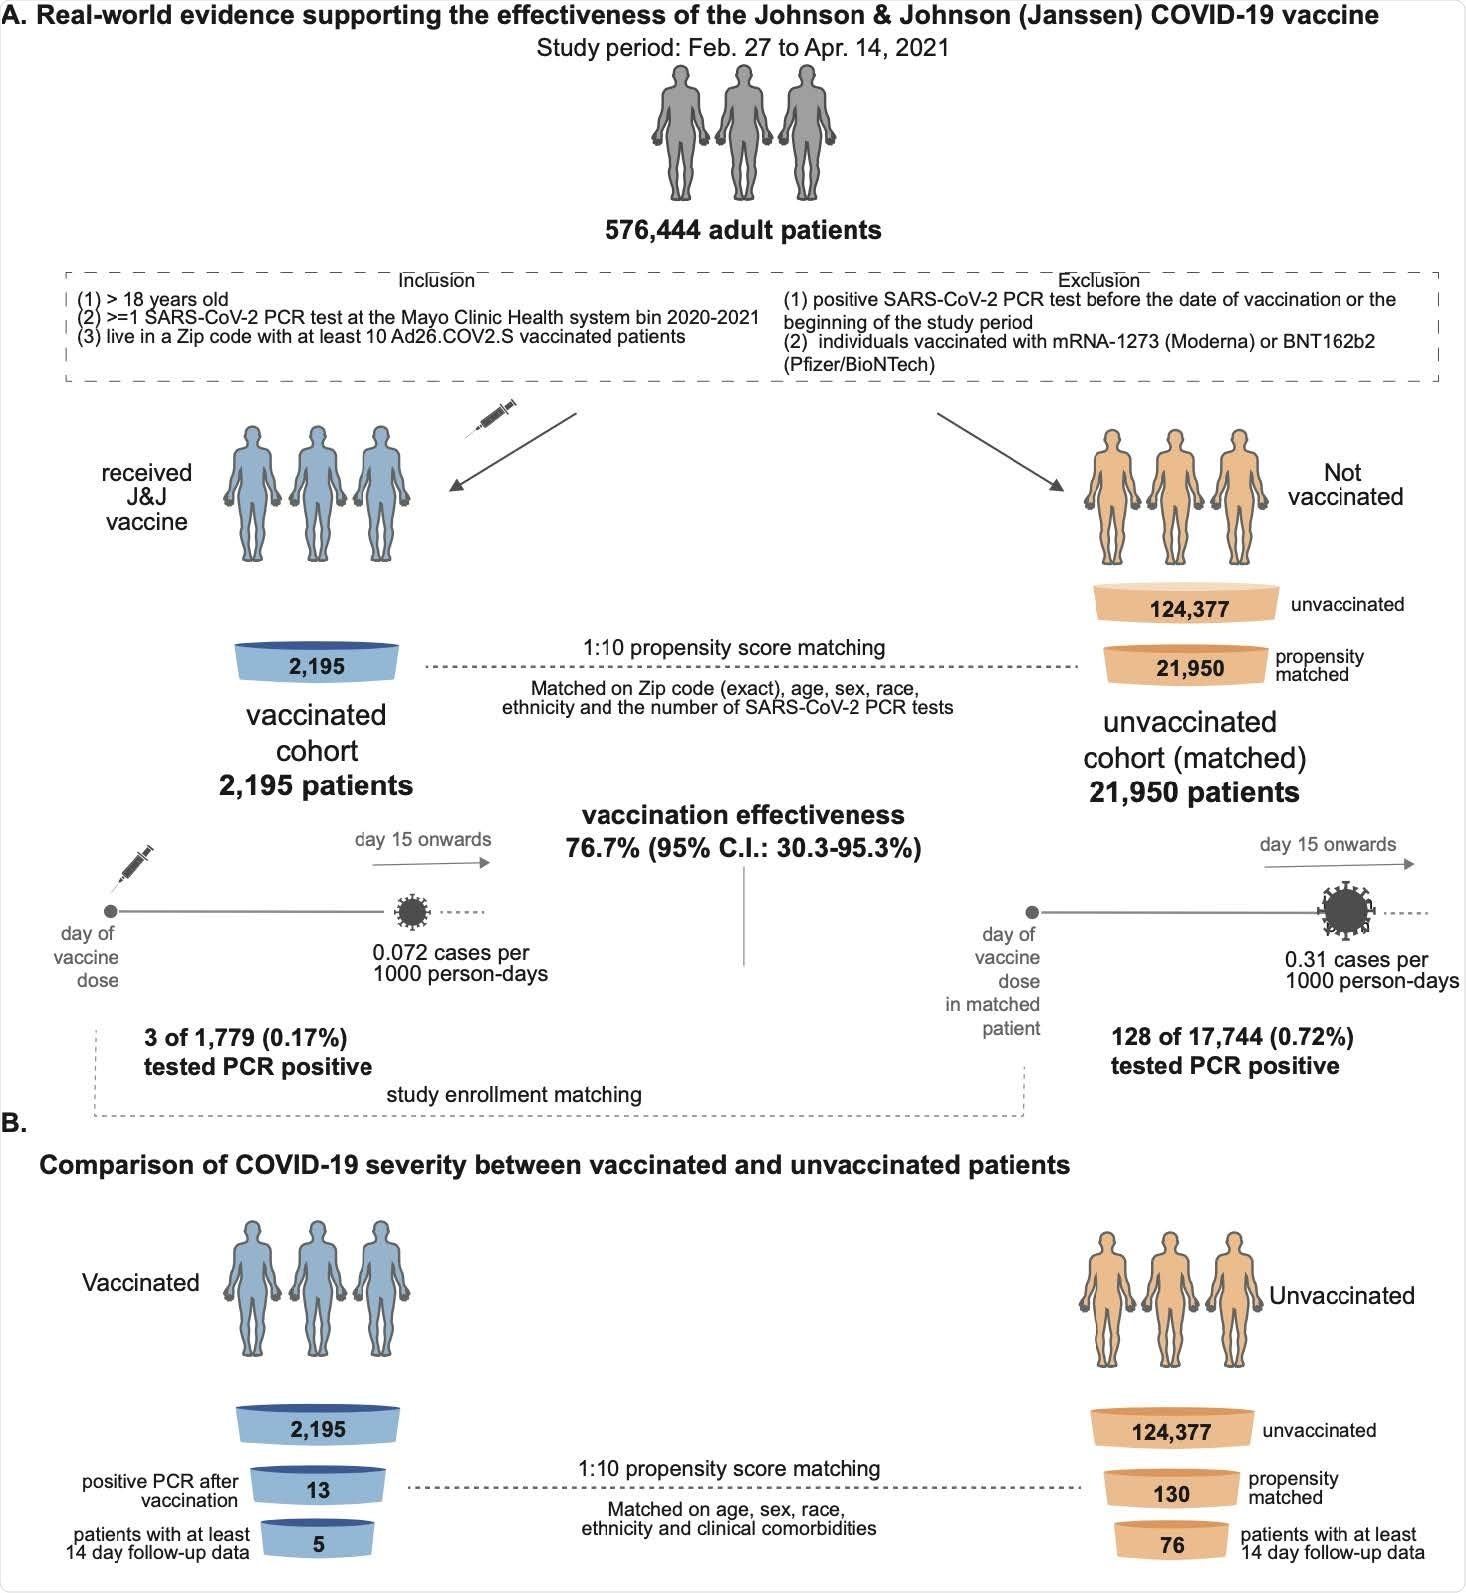 Schematic illustrating the analysis of Ad26.COV2.S (Johnson & Johnson, J&J) vaccine effectiveness by comparing vaccinated and unvaccinated cohorts. (A) Analysis of effectiveness in preventing SARS-CoV-2 infection. Out of 126,572 available adult patients during the study period (Feb 27, 2021 to April 14, 2021), 2,195 patients were vaccinated. A 1:10 control cohort of 21,950 patients was designed by propensity-matching for COVID-19 infection risk (e.g. location). Starting 15 days after study enrollment, 3 of 1,779 vaccinated patients tested positive for SARS-COV-2 (by PCR) after vaccination vs 128 of 17,744 unvaccinated individuals, corresponding to an effectiveness of 76.7% achieved two weeks after vaccination. (B) Analysis of effectiveness in preventing severe SARS-CoV-2 infection (hospitalization, ICU admission, mortality). In order to control for age and comorbidities, a 1:10 control cohort of 130 patients was designed by propensity-matching to match the 13 infected individuals that were vaccinated. No difference is observed but too few events were available at the time of publication to provide adequate power for this analysis.